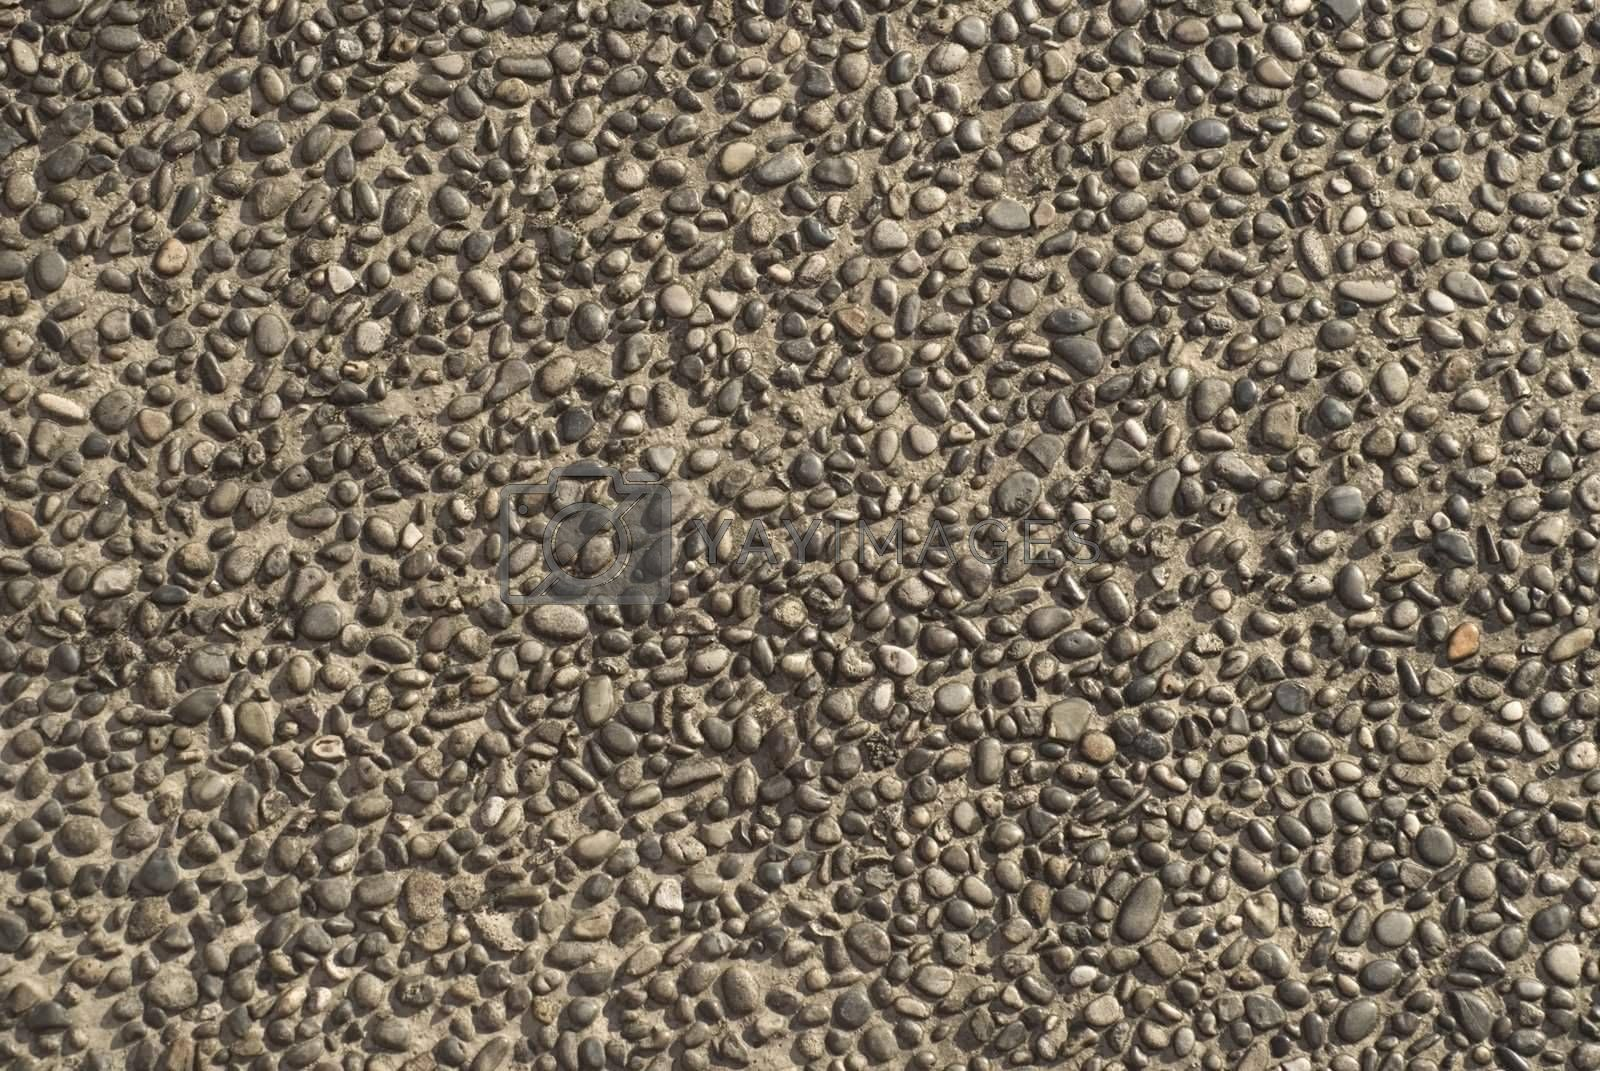 Close up of detail of concrete paving with tiny pebbles in sidewalk.